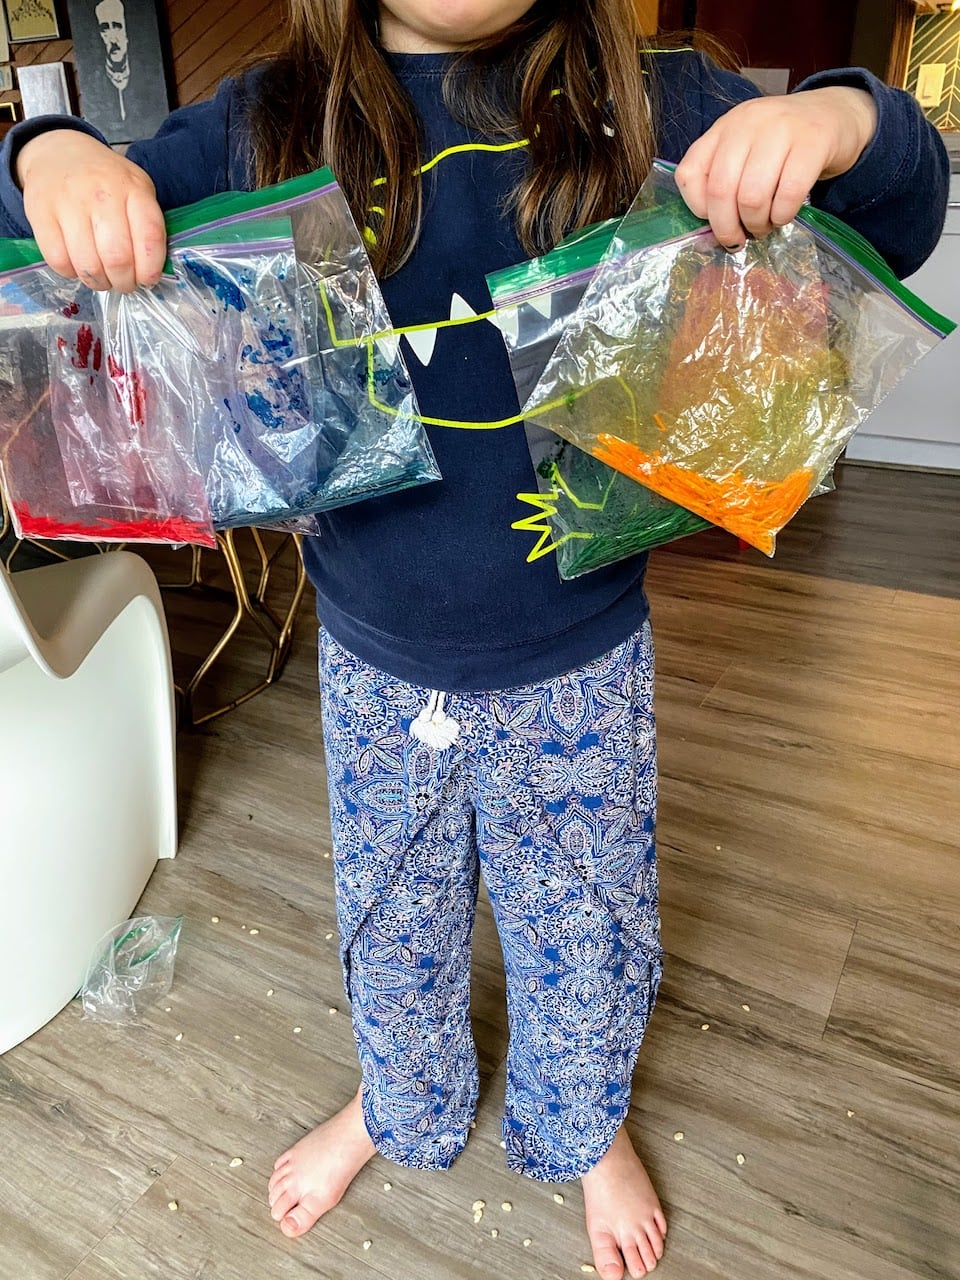 child holding 5 ziploc bags of colored broken spaghetti noodles